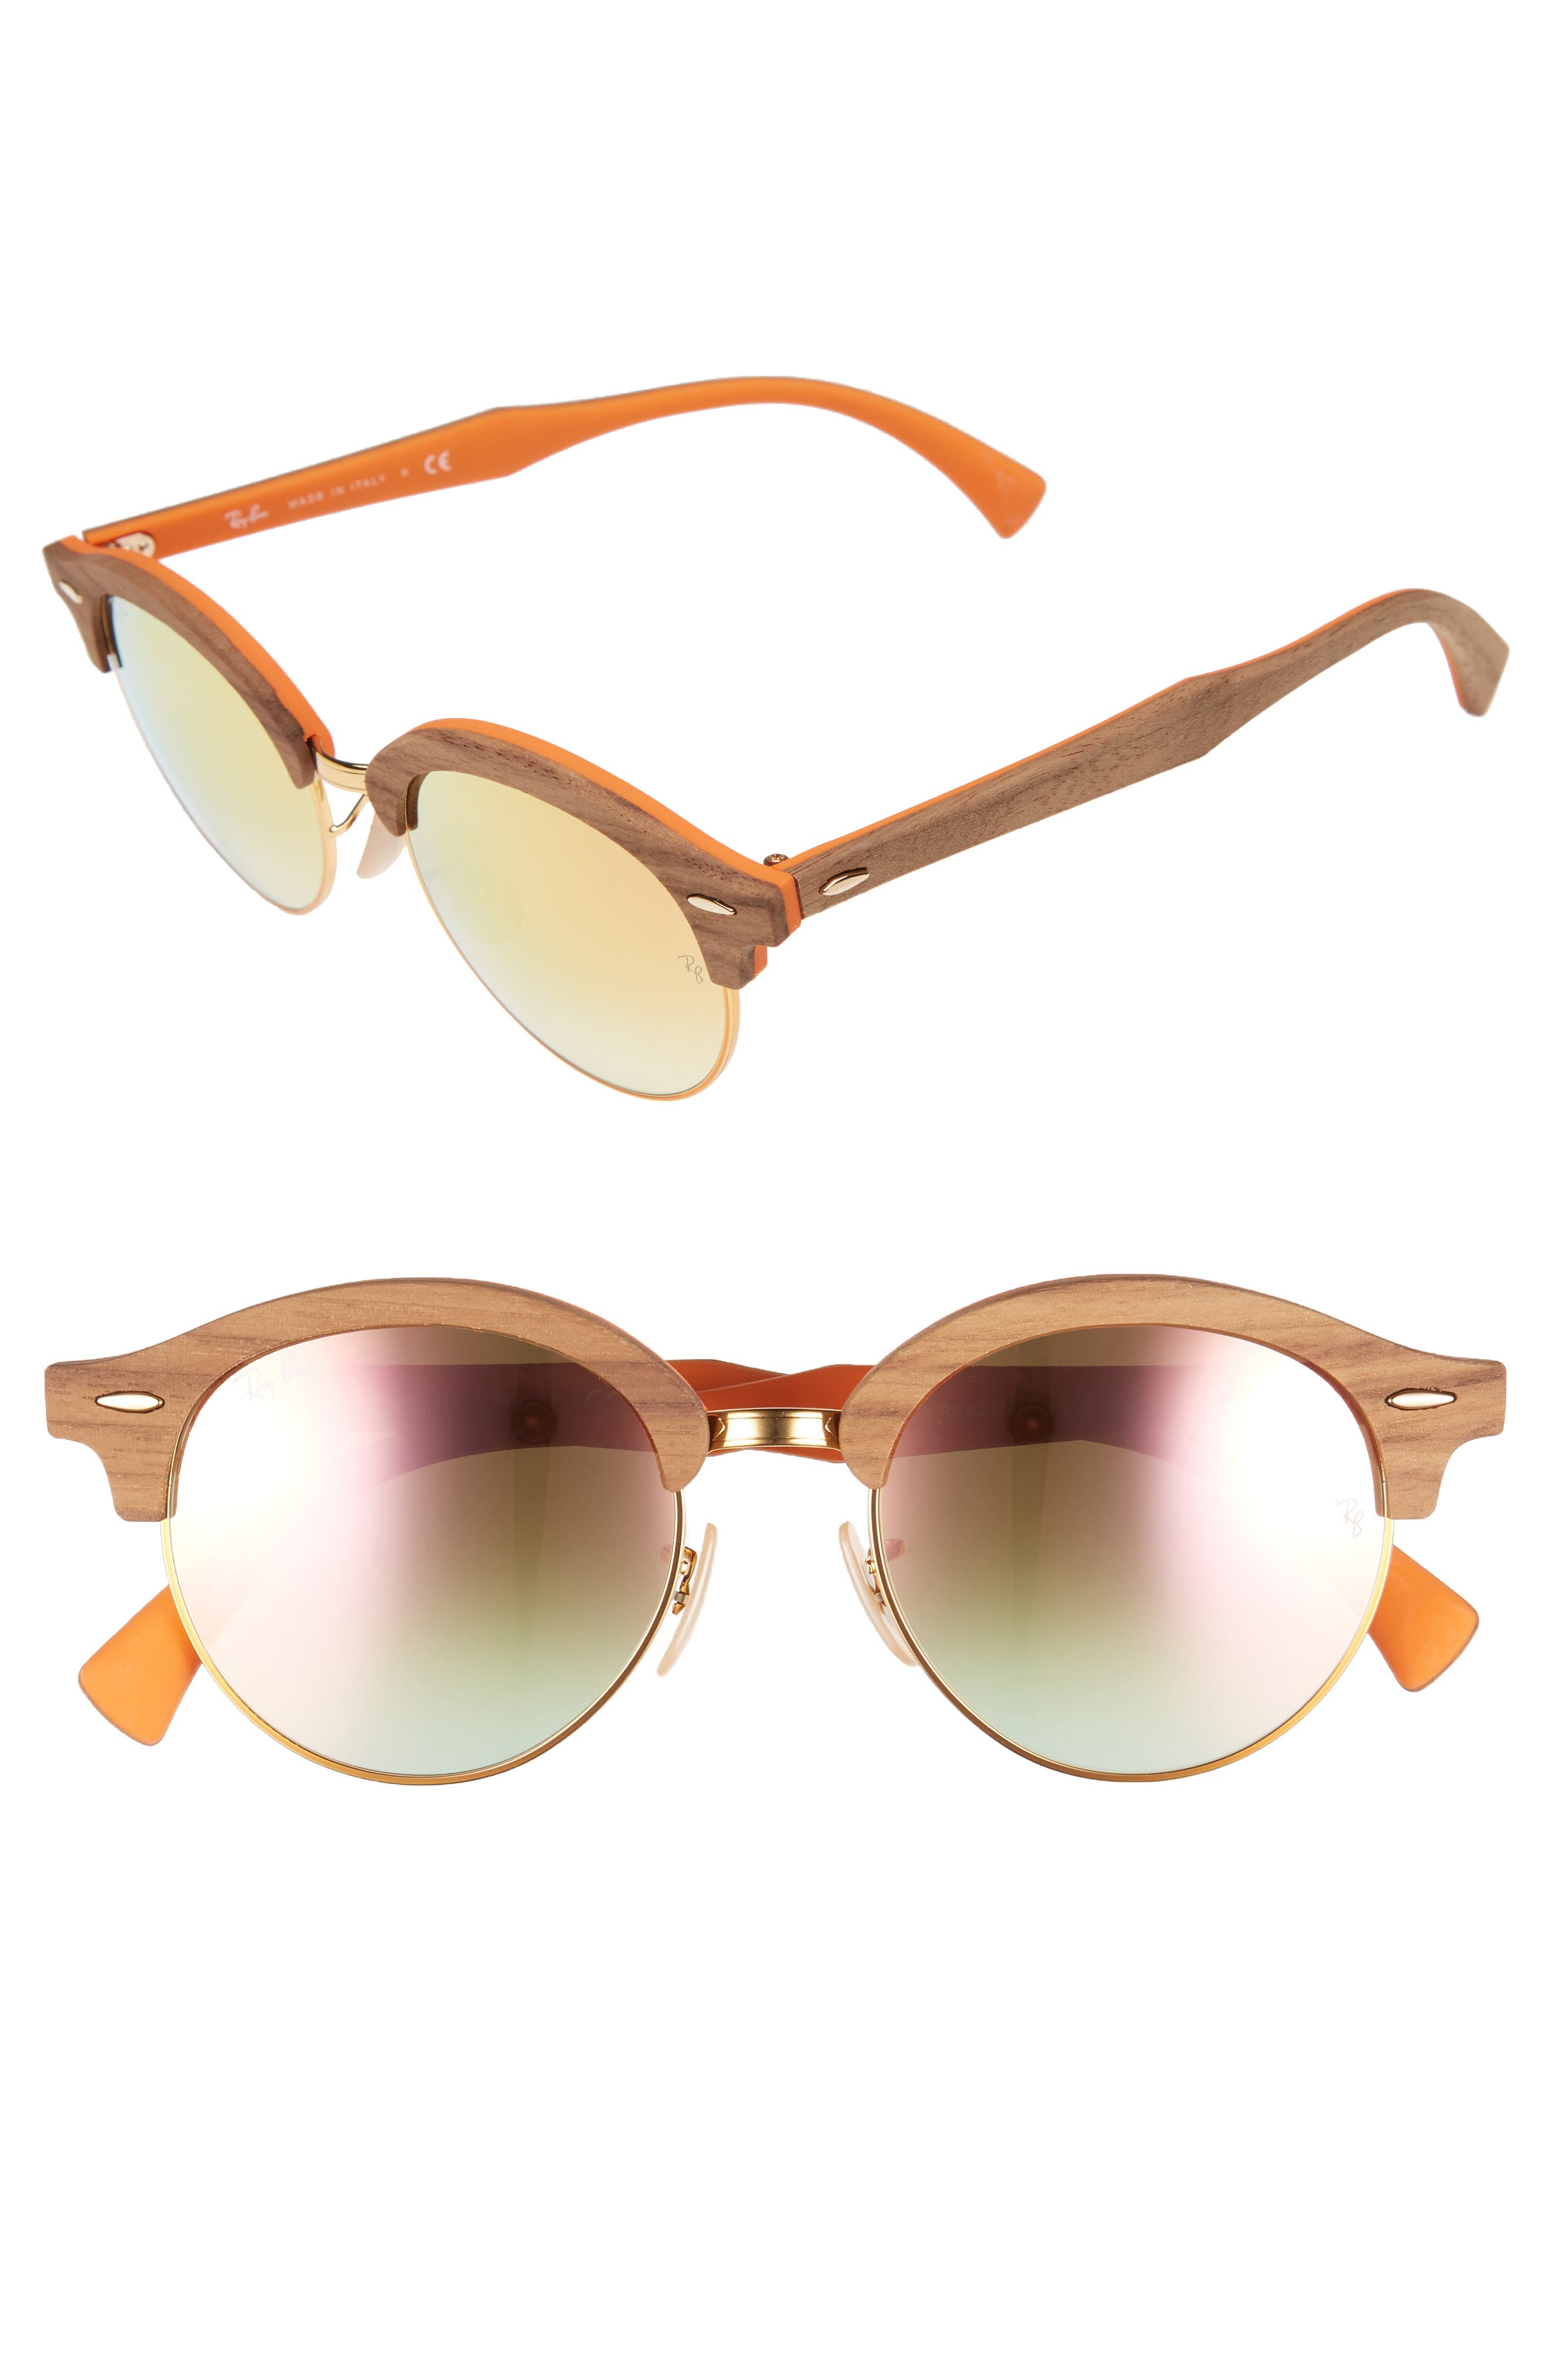 RAY-BAN 51mm Mirrored Round Sunglasses